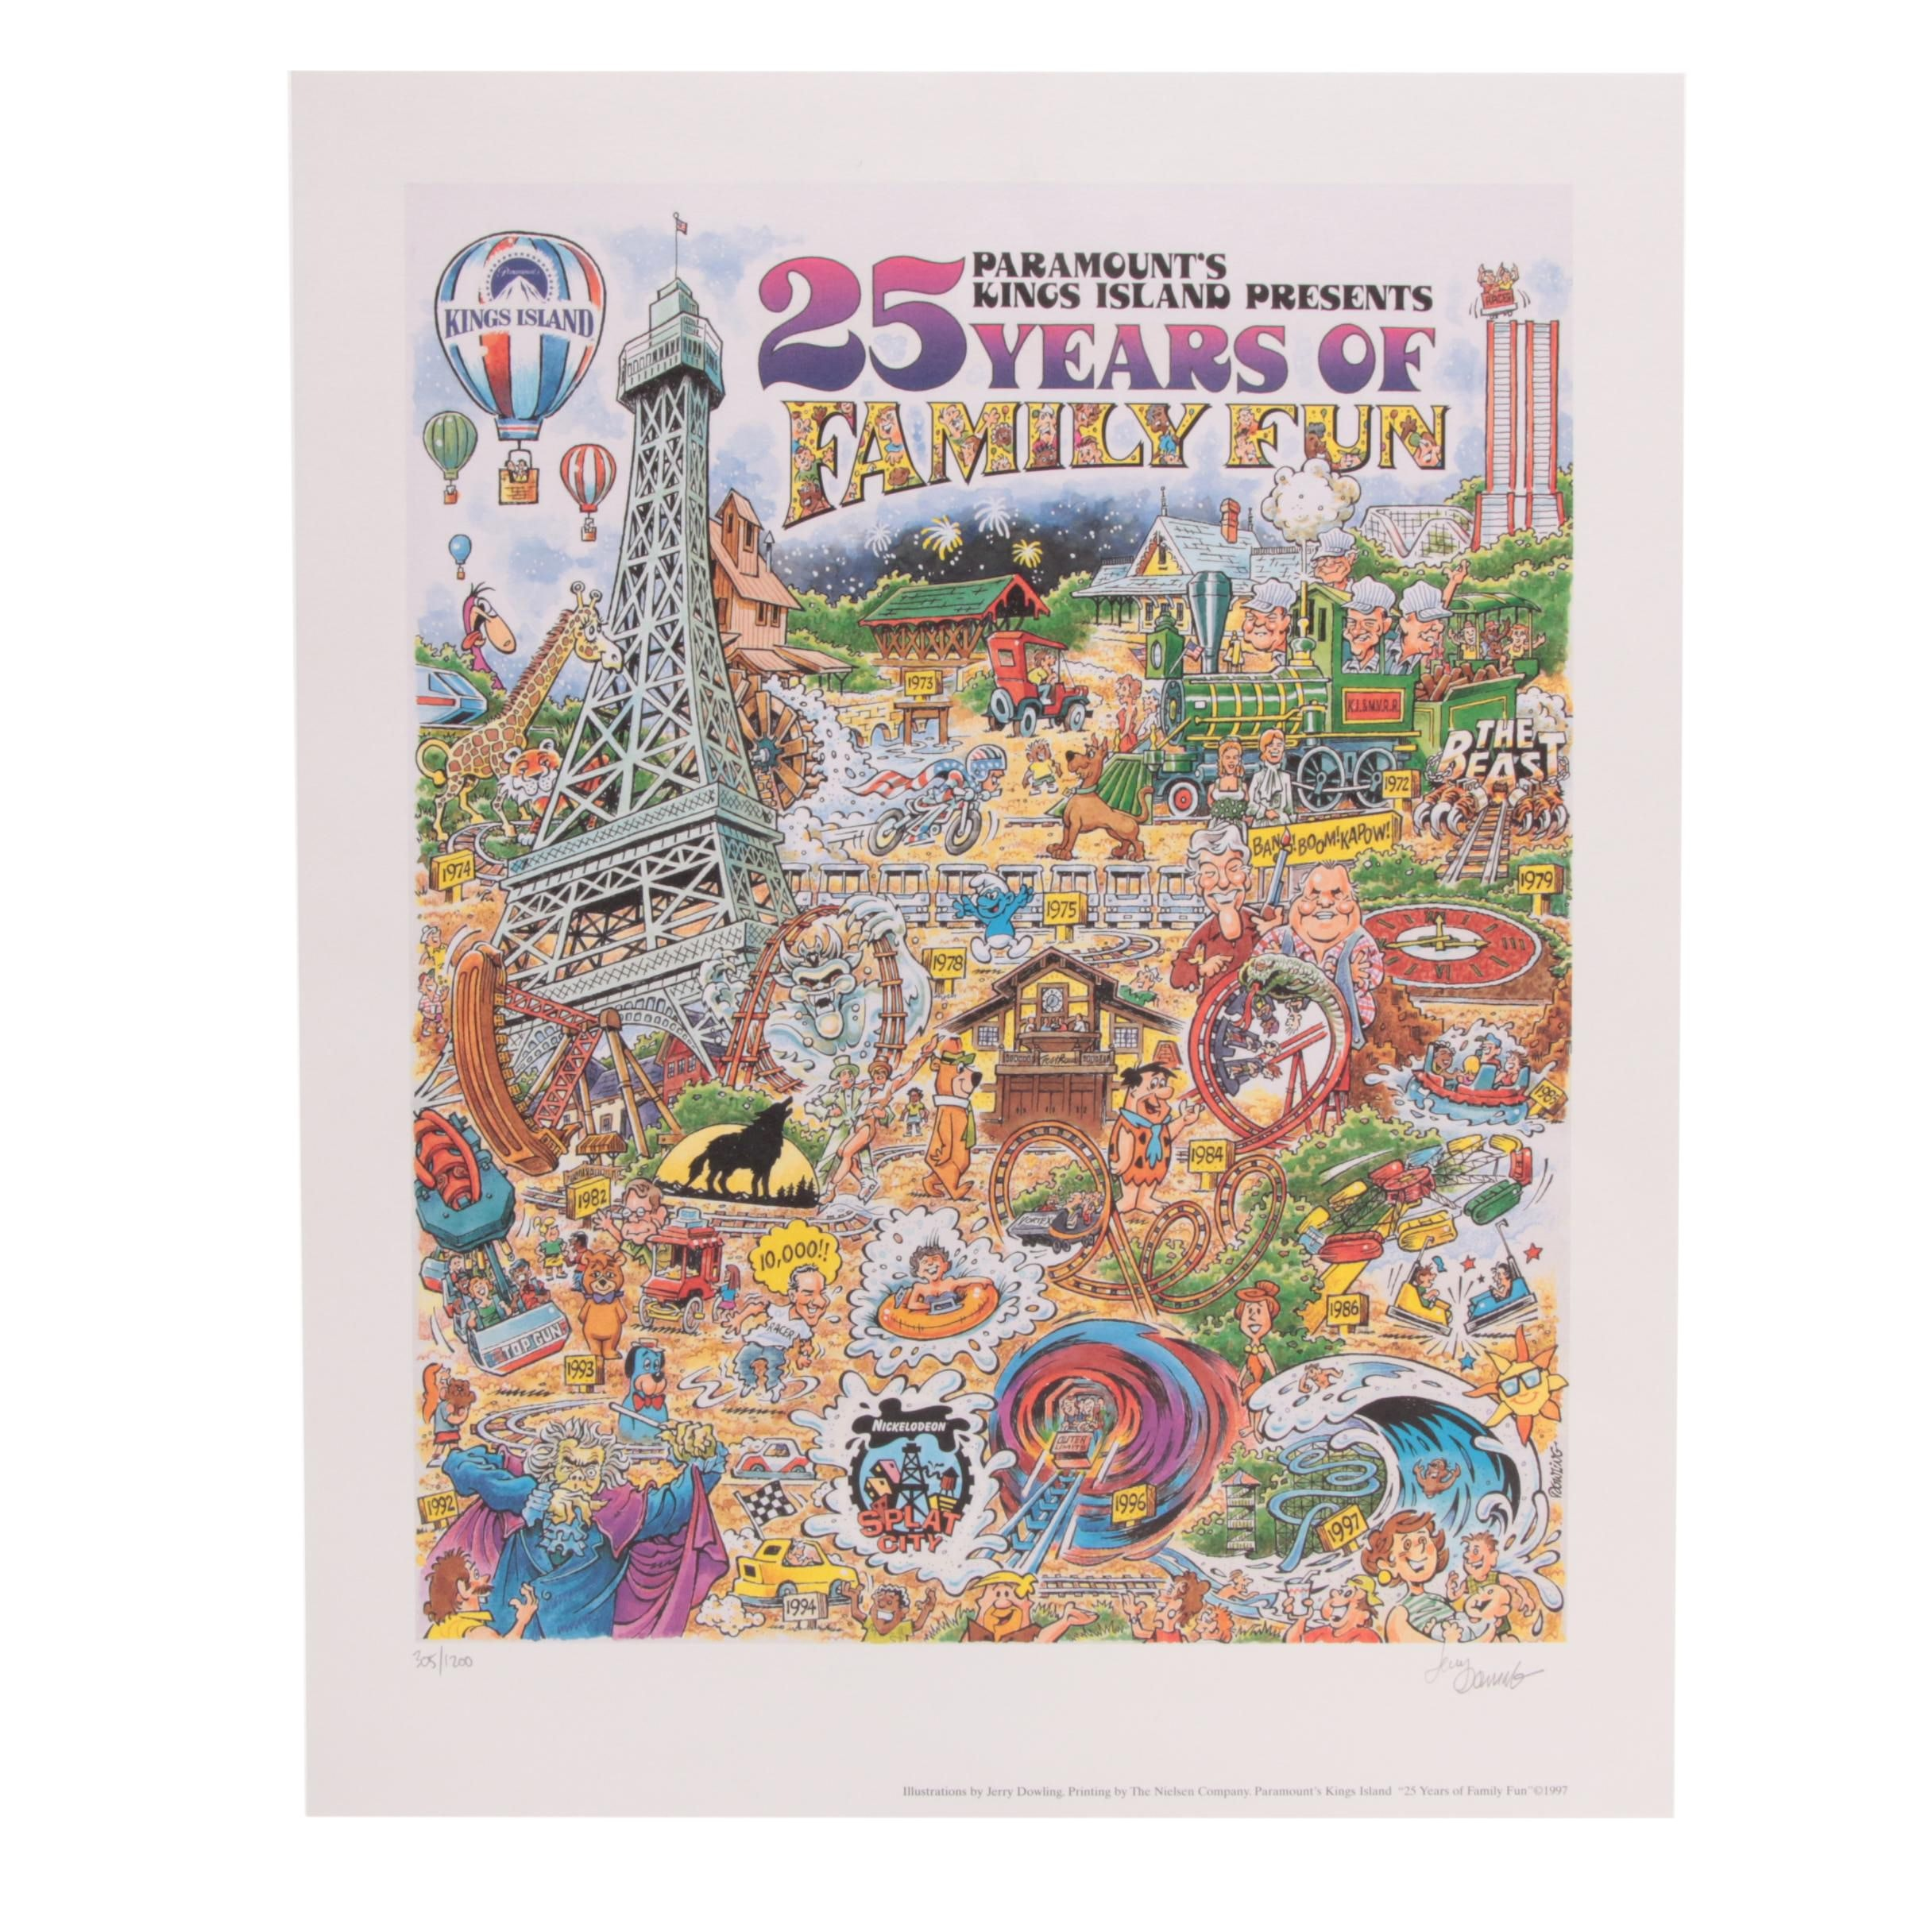 """Jerry Dowling Limited Edition Offset Lithograph """"Paramount's Kings Island..."""""""